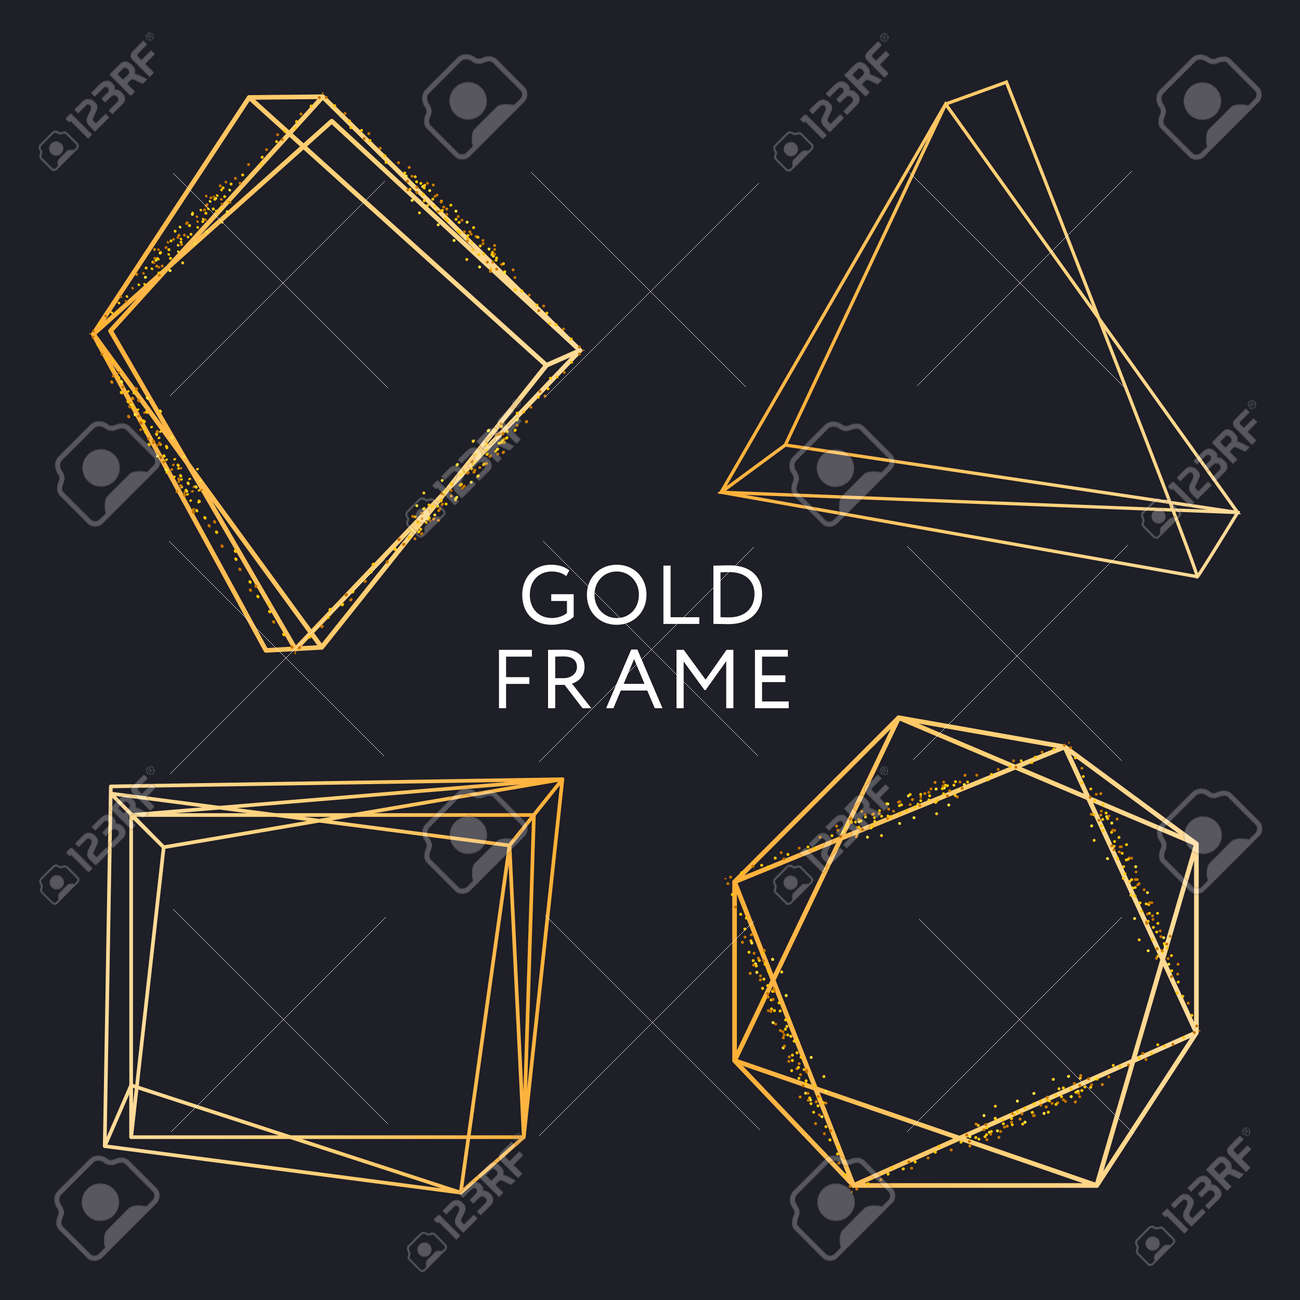 e1acee356f8 Gold Frame Geometric Shape Minimalism Vector Design Banner Golden Set Stock  Vector - 105674569